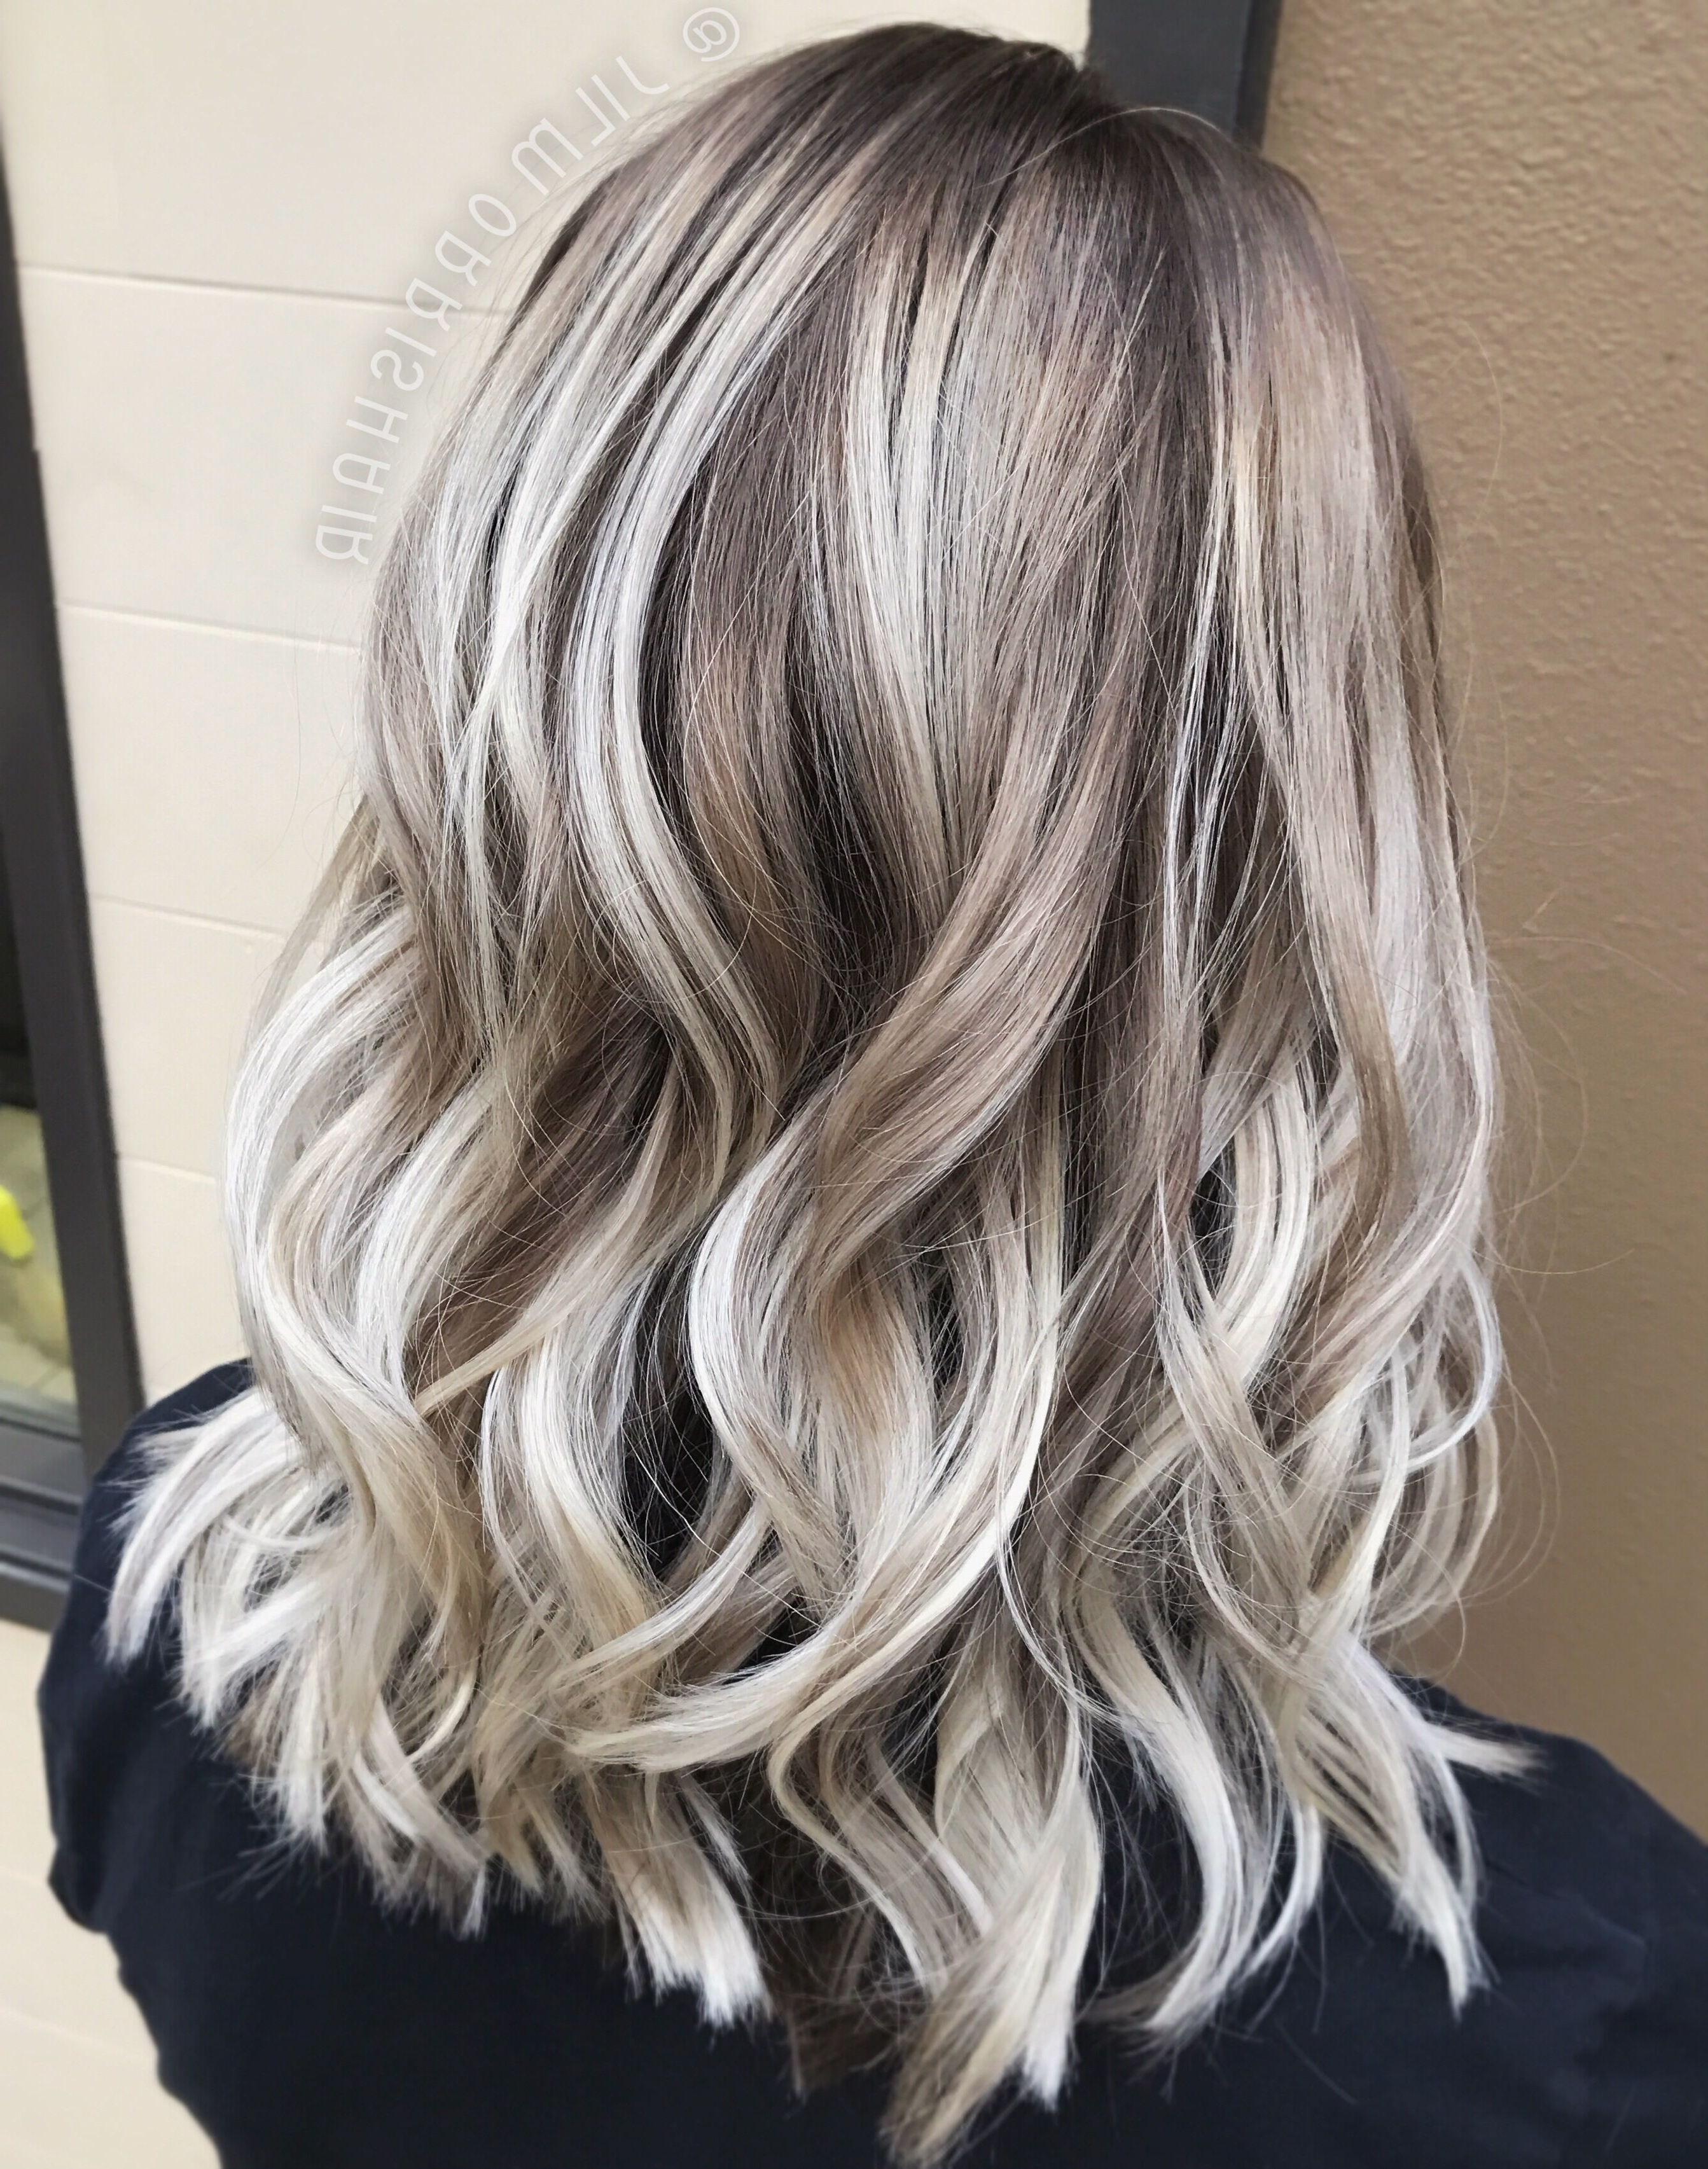 White Ash Blonde Balayage, Shadow Root, Curls In A Textured Lob Intended For Current Textured Medium Length Look Blonde Hairstyles (View 19 of 20)